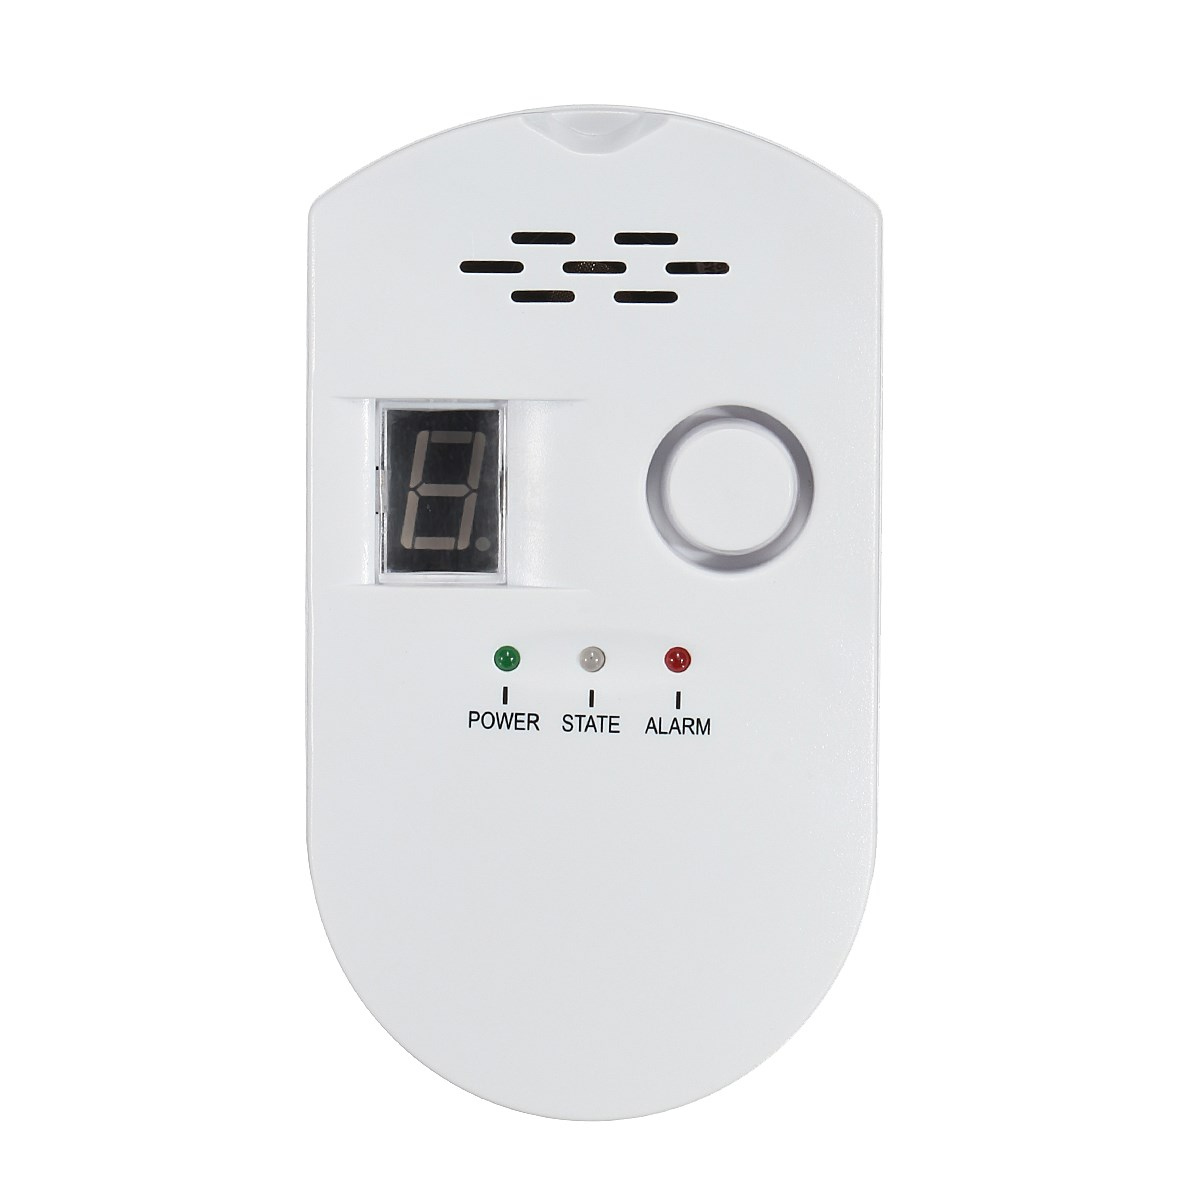 NEW Safurance LCD LPG LNG Coal Natural Gas Leak Security Alarm Sensor Warning Detector UK Plug High Sensitive new standalone combustible gas alarm lpg lng coal natural gas leak detector sensor for home security safety free shipping